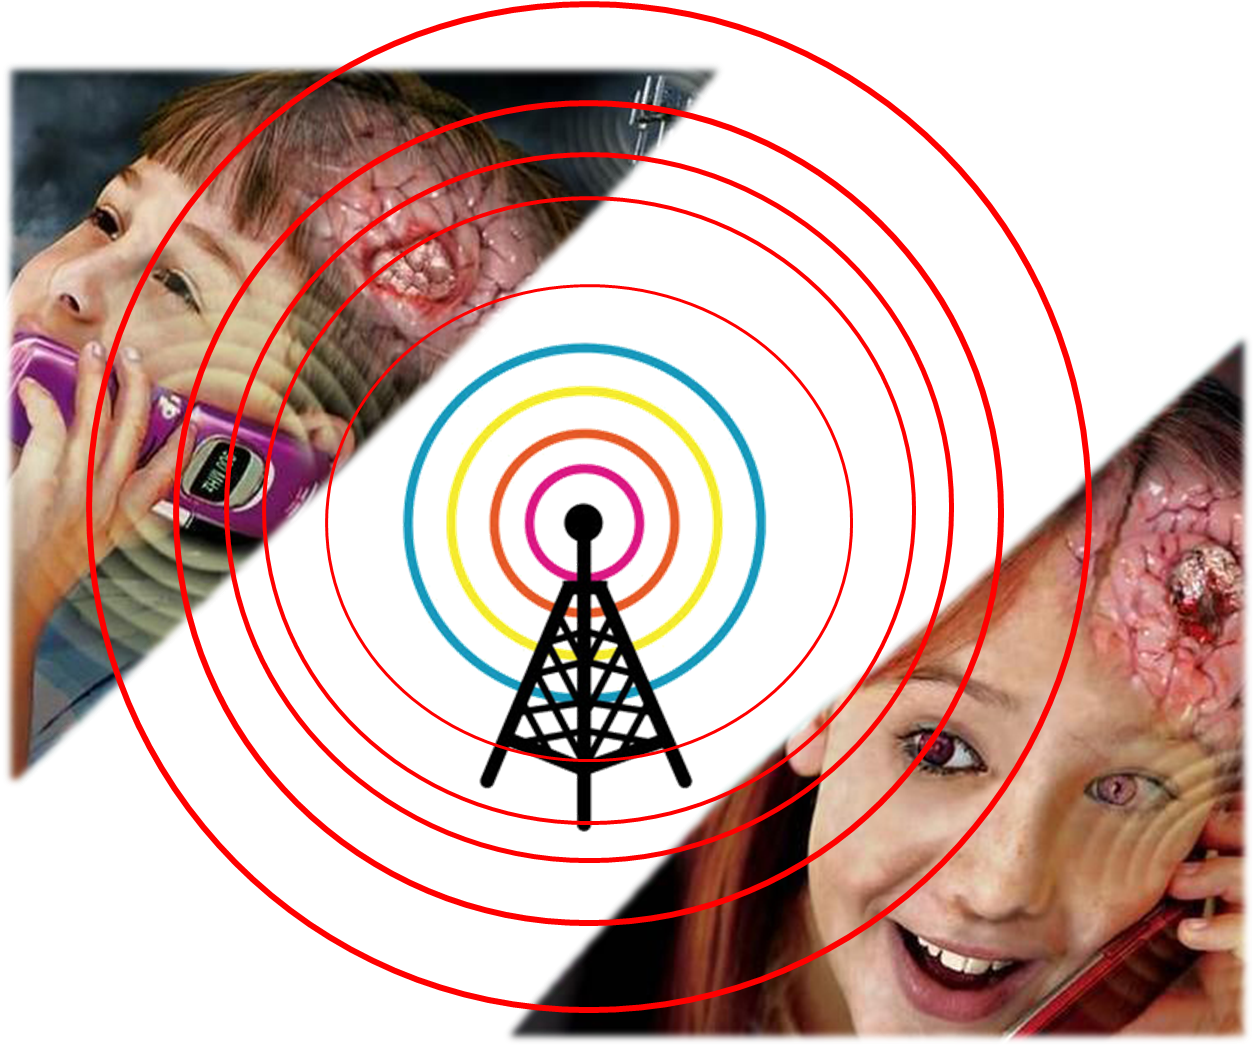 mobile phone radiation Cell phone radiation effects are not a laughing matter get the cell phone radiation facts today and get protected fast it's much easier than the alternative.